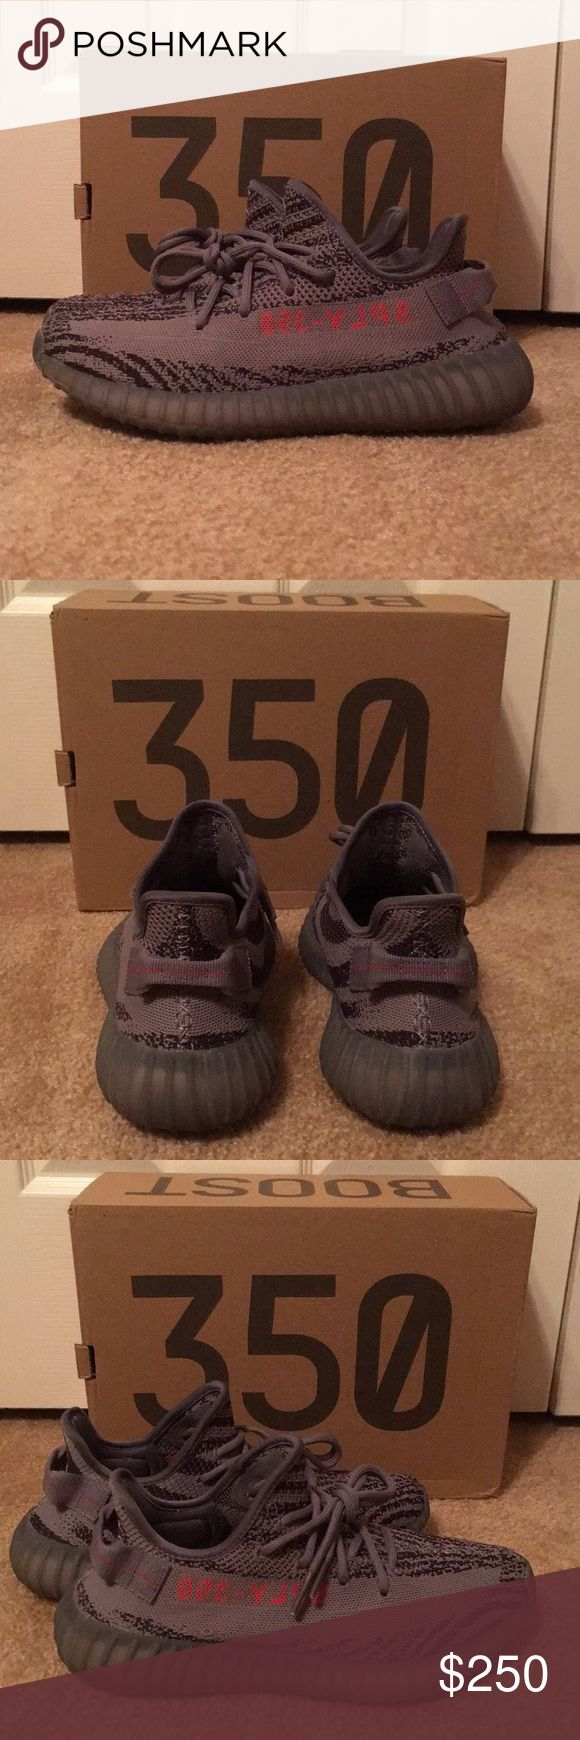 Yeezy Boost 350 V2 Beluga 2.0 Size 9.5 US Men's These Yeezy Boost 350 V2 Beluga 2.0s have been fairly lightly worn and are in very good condition. Selling for low price because I want to get rid of them quickly. I bought them as authentic shoes. This is a great deal you don't want to miss out on! Lost the receipt. No returns. Sold as seen in photos. Yeezy Shoes Sneakers